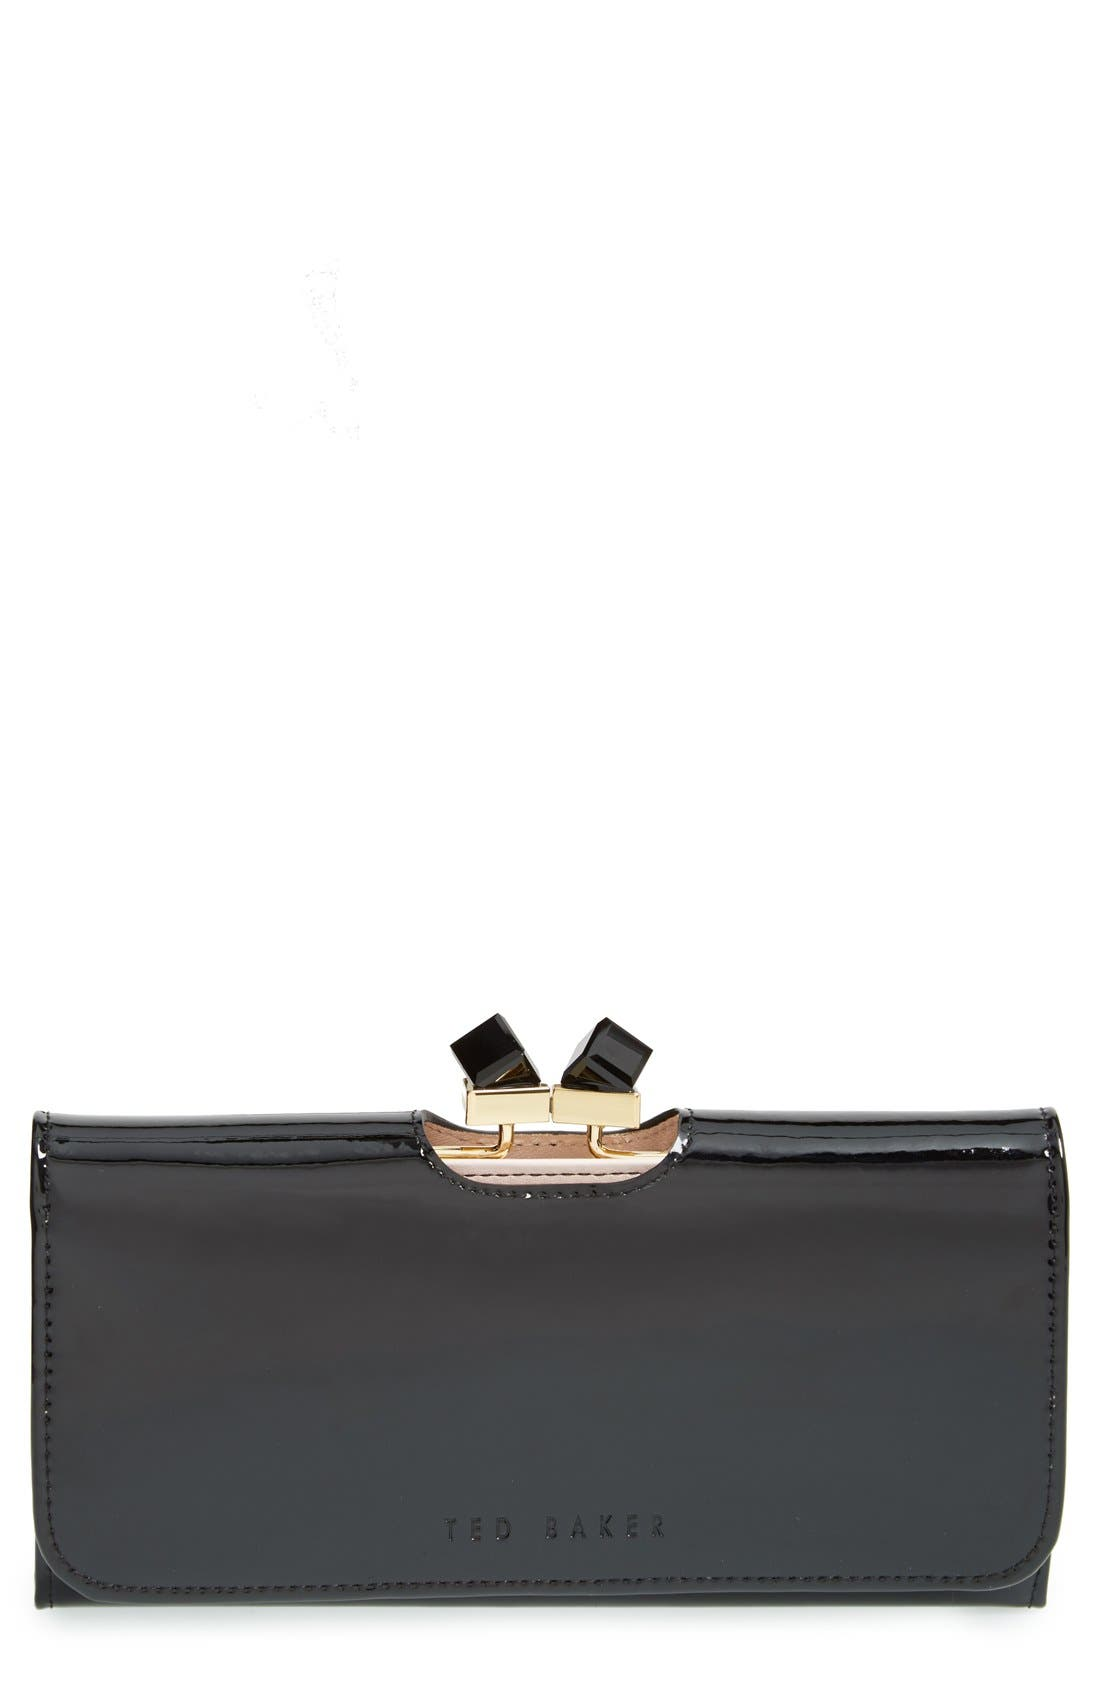 TED BAKER LONDON,                             'Crystal Frame' Patent Leather Matinee Wallet,                             Main thumbnail 1, color,                             001